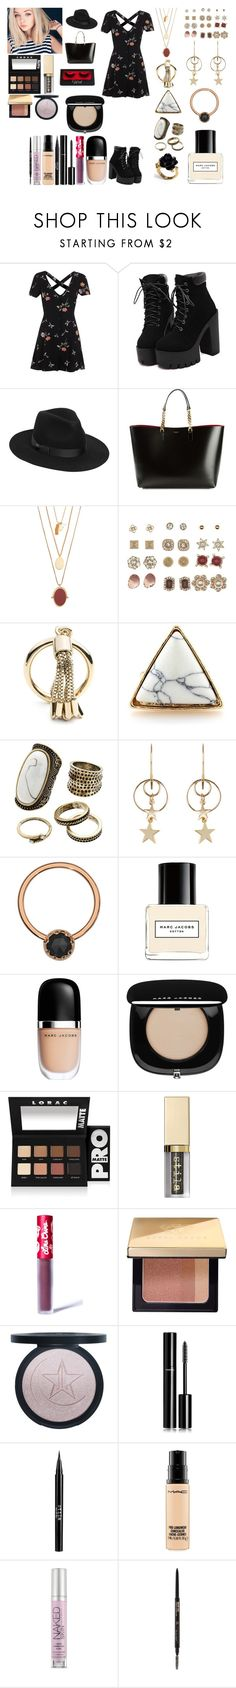 """Untitled #879"" by asiebenthaler ❤ liked on Polyvore featuring Miss Selfridge, Lack of Color, Yves Saint Laurent, Madewell, Charlotte Russe, Eddie Borgo, Gemma Simone, Zimmermann, Marc Jacobs and LORAC"